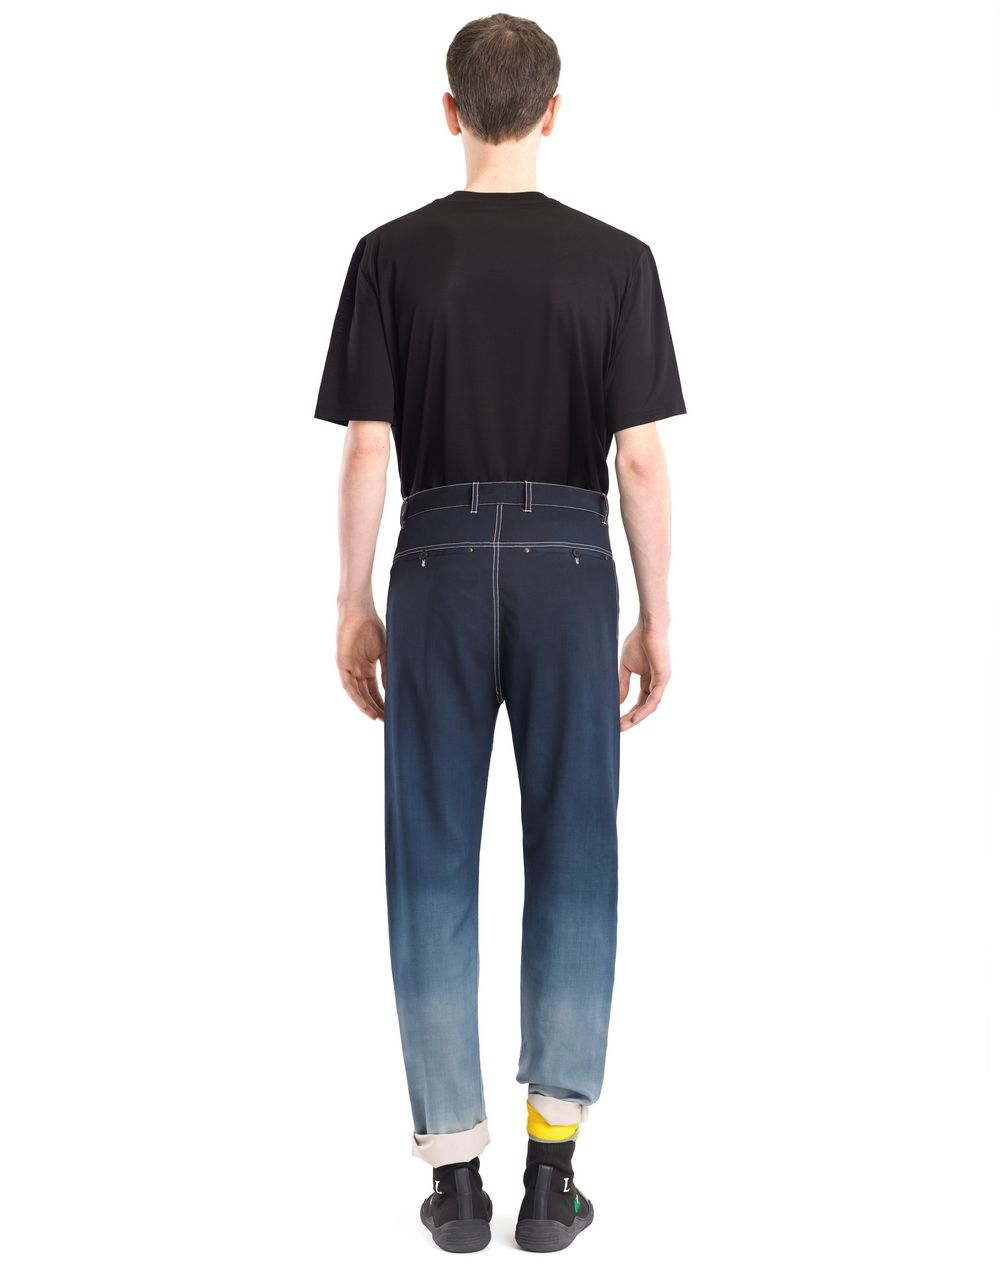 OVERDYED TROUSERS - Lanvin